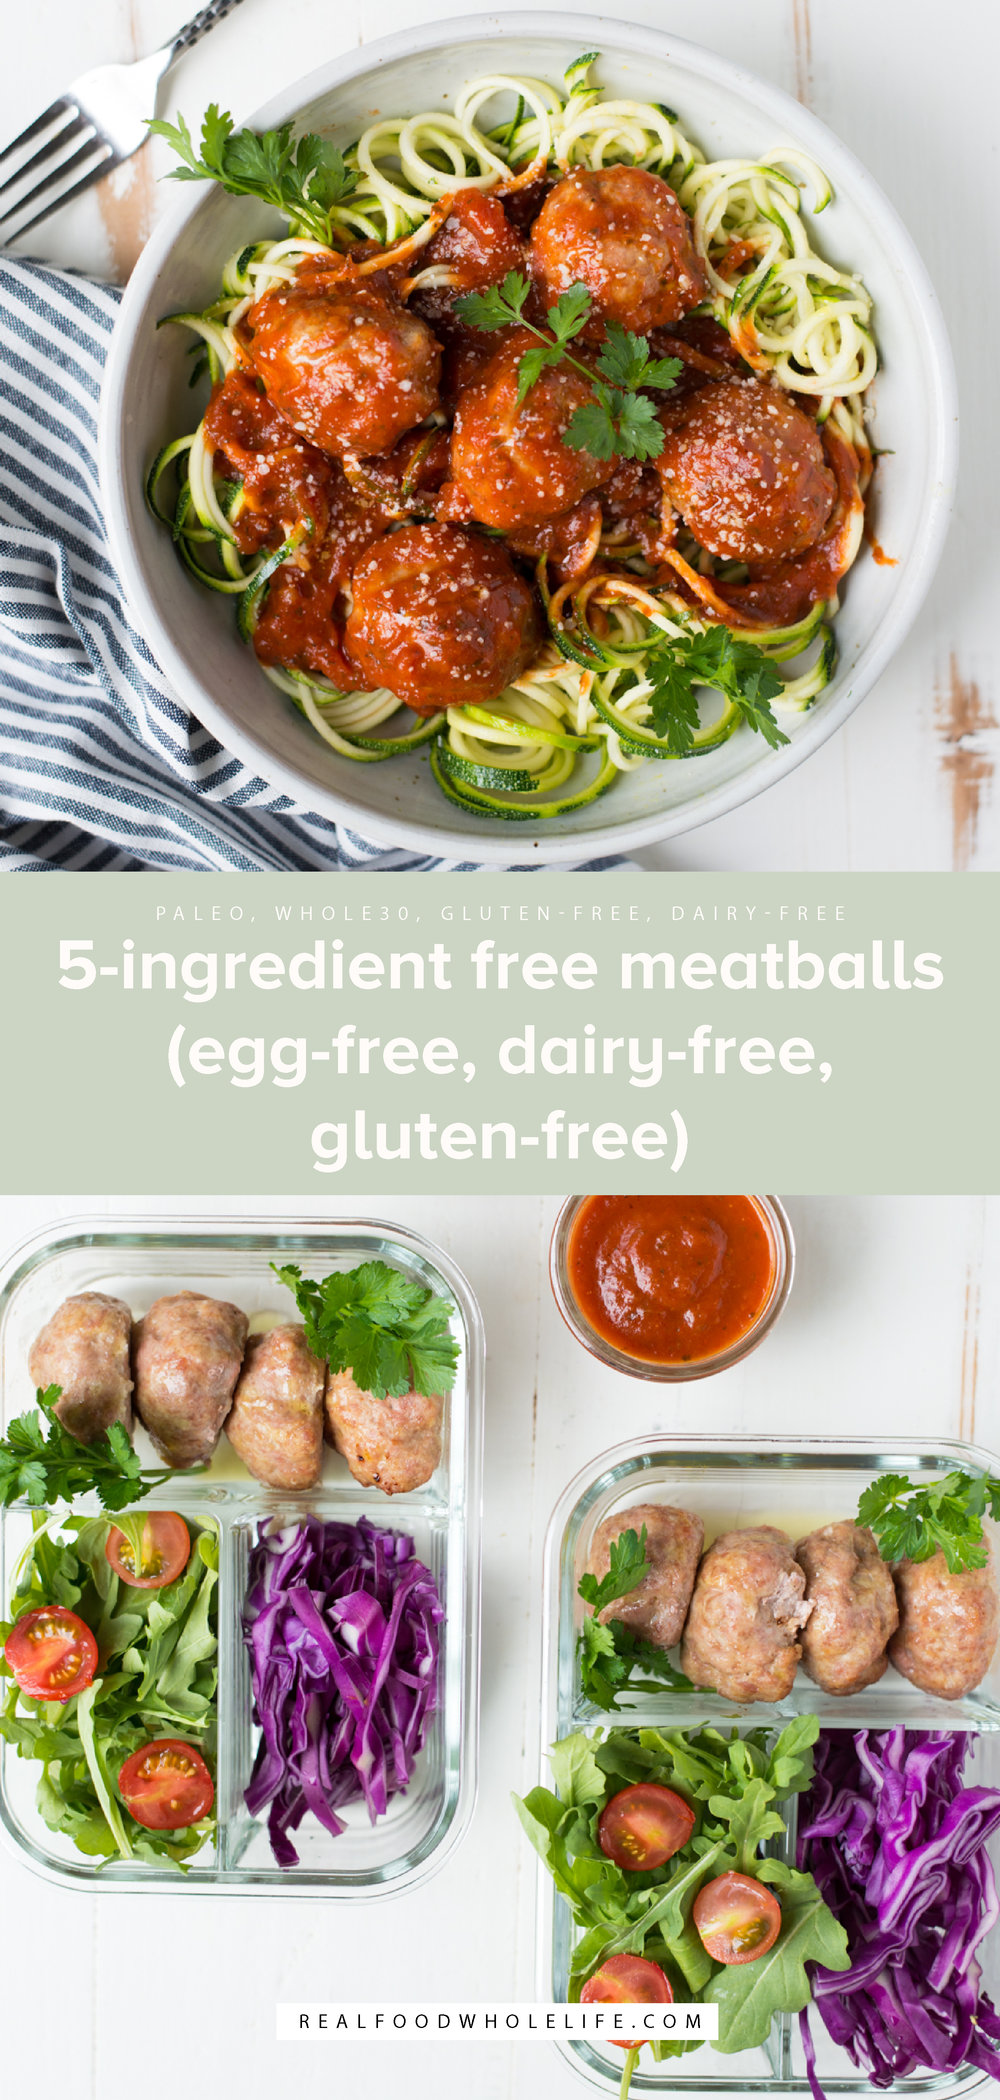 5-Ingredient Free Meatballs (egg-free, dairy-free, gluten-free) are free of all the major allergens, but still taste amazing and are easy to make with a short list of simple ingredients. Make a double batch during meal prep and you're good to go! #realfoodwholelife #realfoodwholeliferecipe #recipe #dinner #whole30 #whole30recipe #paleo #paleorecipe #glutenfree #dairyfree #healthy #healthyrecipe #easyrecipe #quickrecipe #eggfree #breadcrumbfree